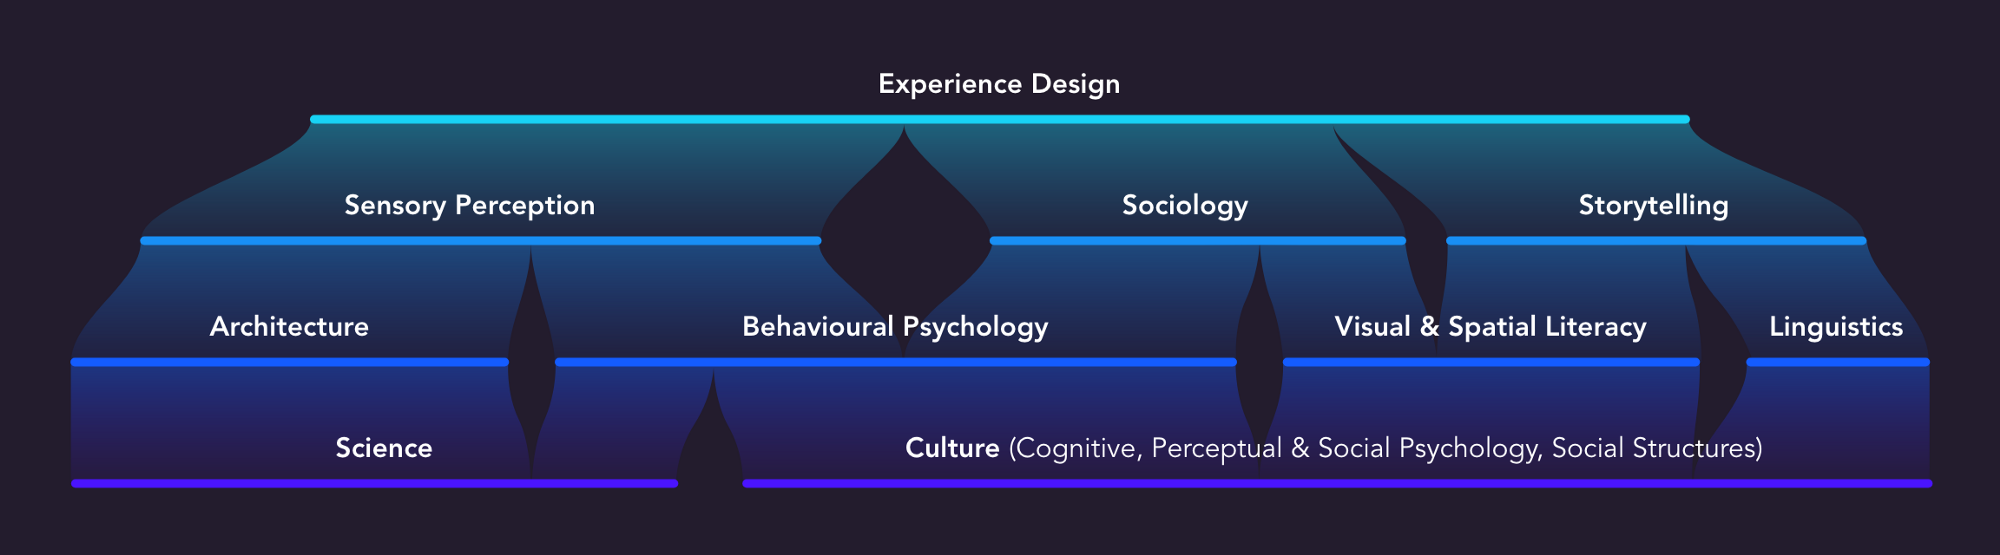 Foundational Influences  and Systems, inherent in Experience Design